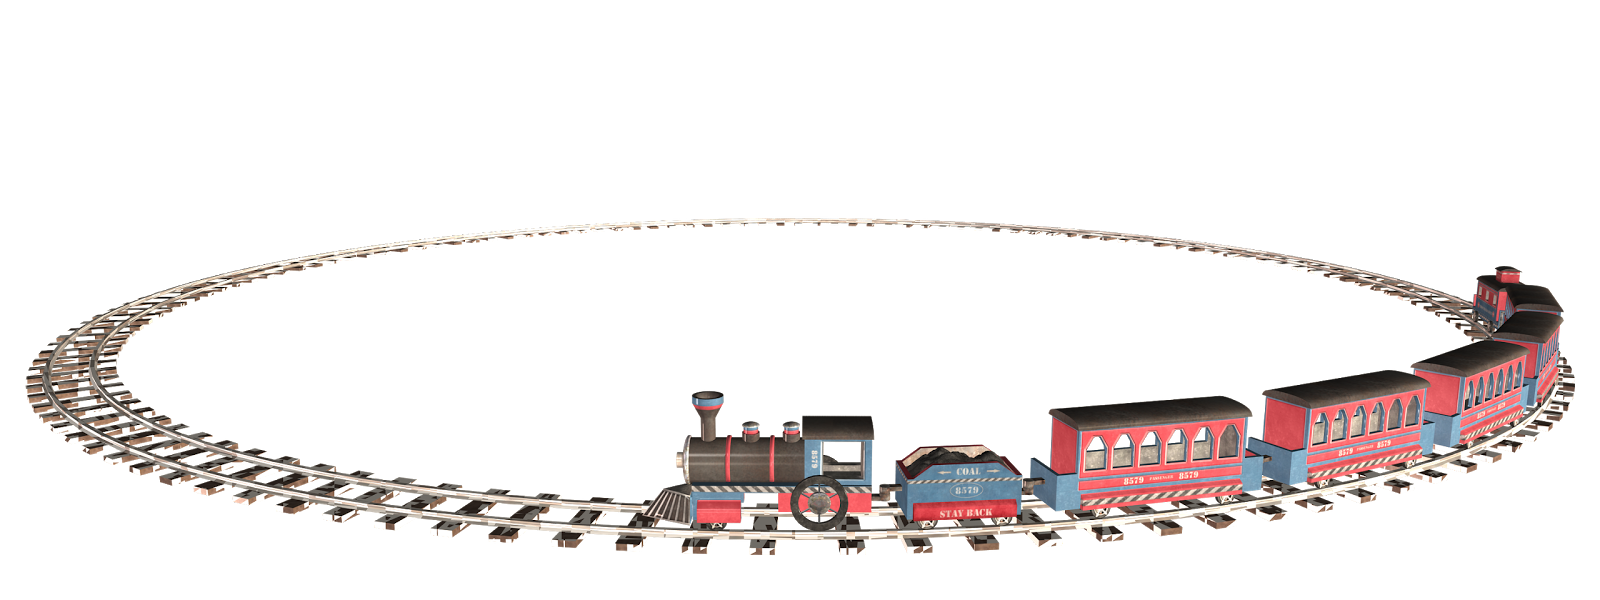 PNG Transparent Toy Train image #31586